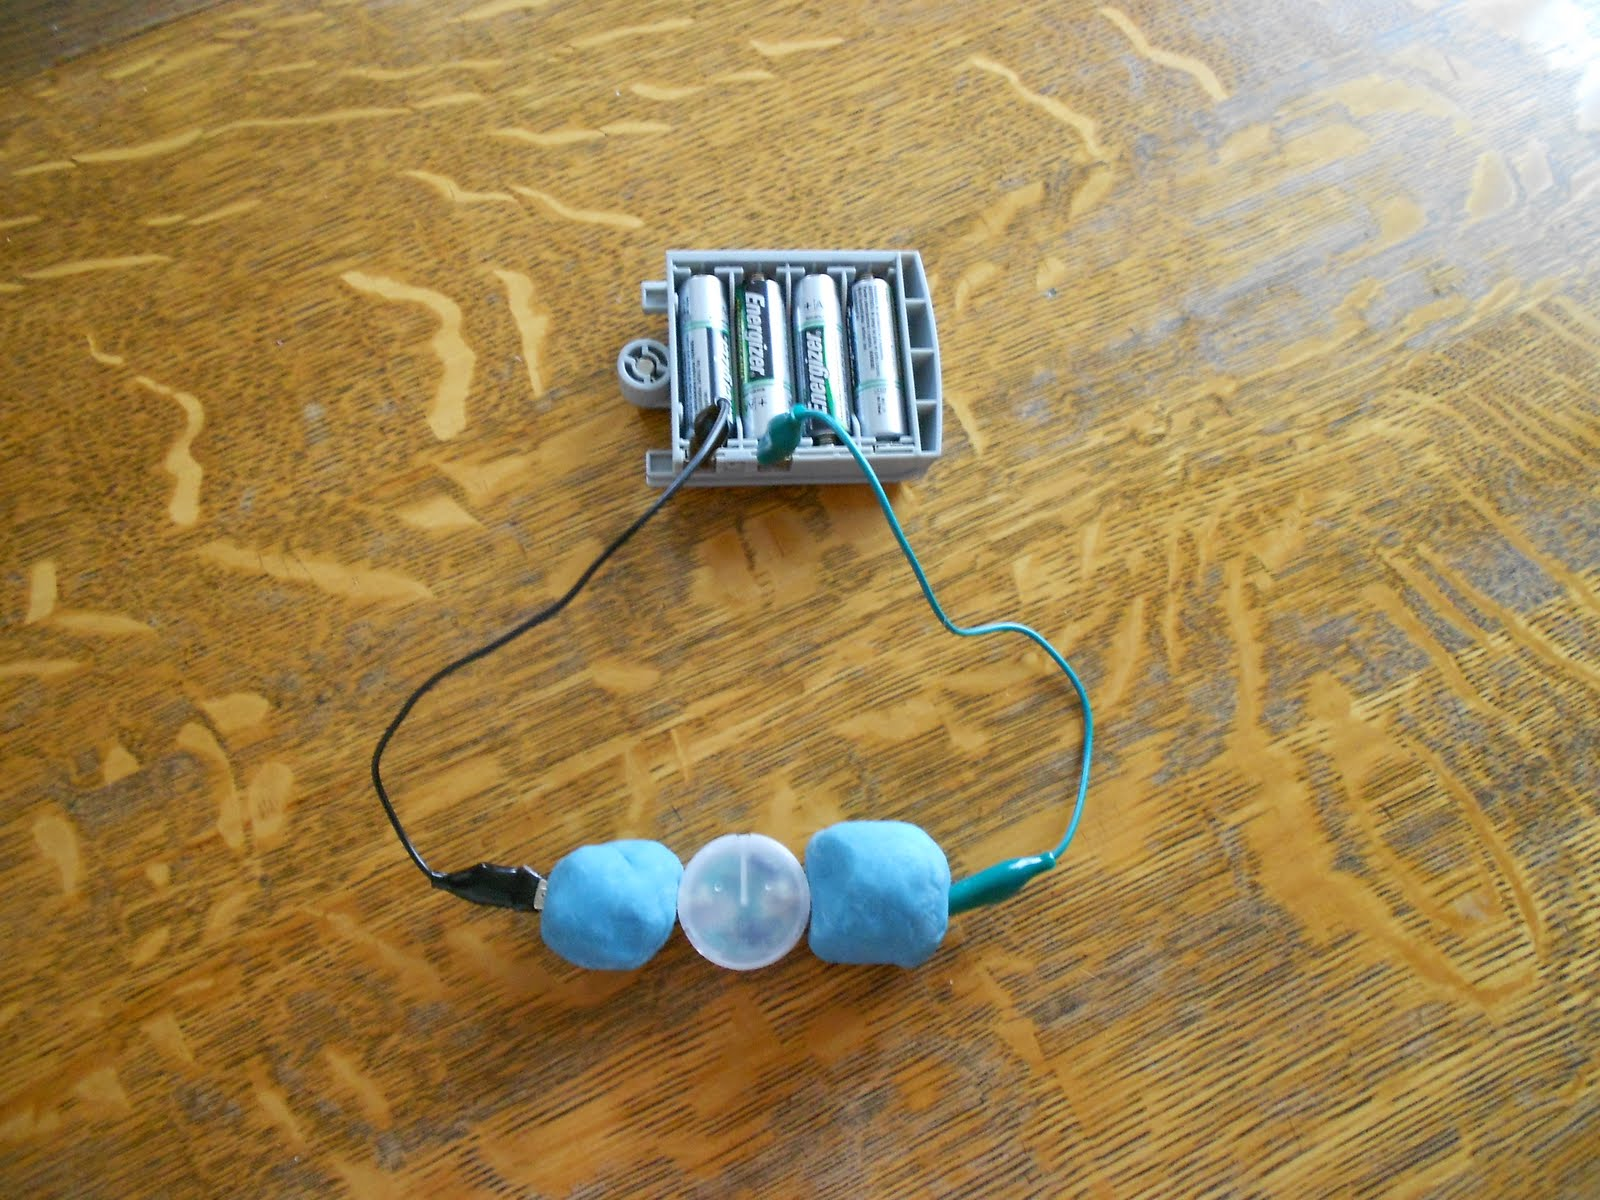 Electric Playdough And More Thoughts On in addition Grouphomepage in addition Trends In Periodic Table moreover Index further Simple Electric Circuit Science Project. on electric buzzer science project